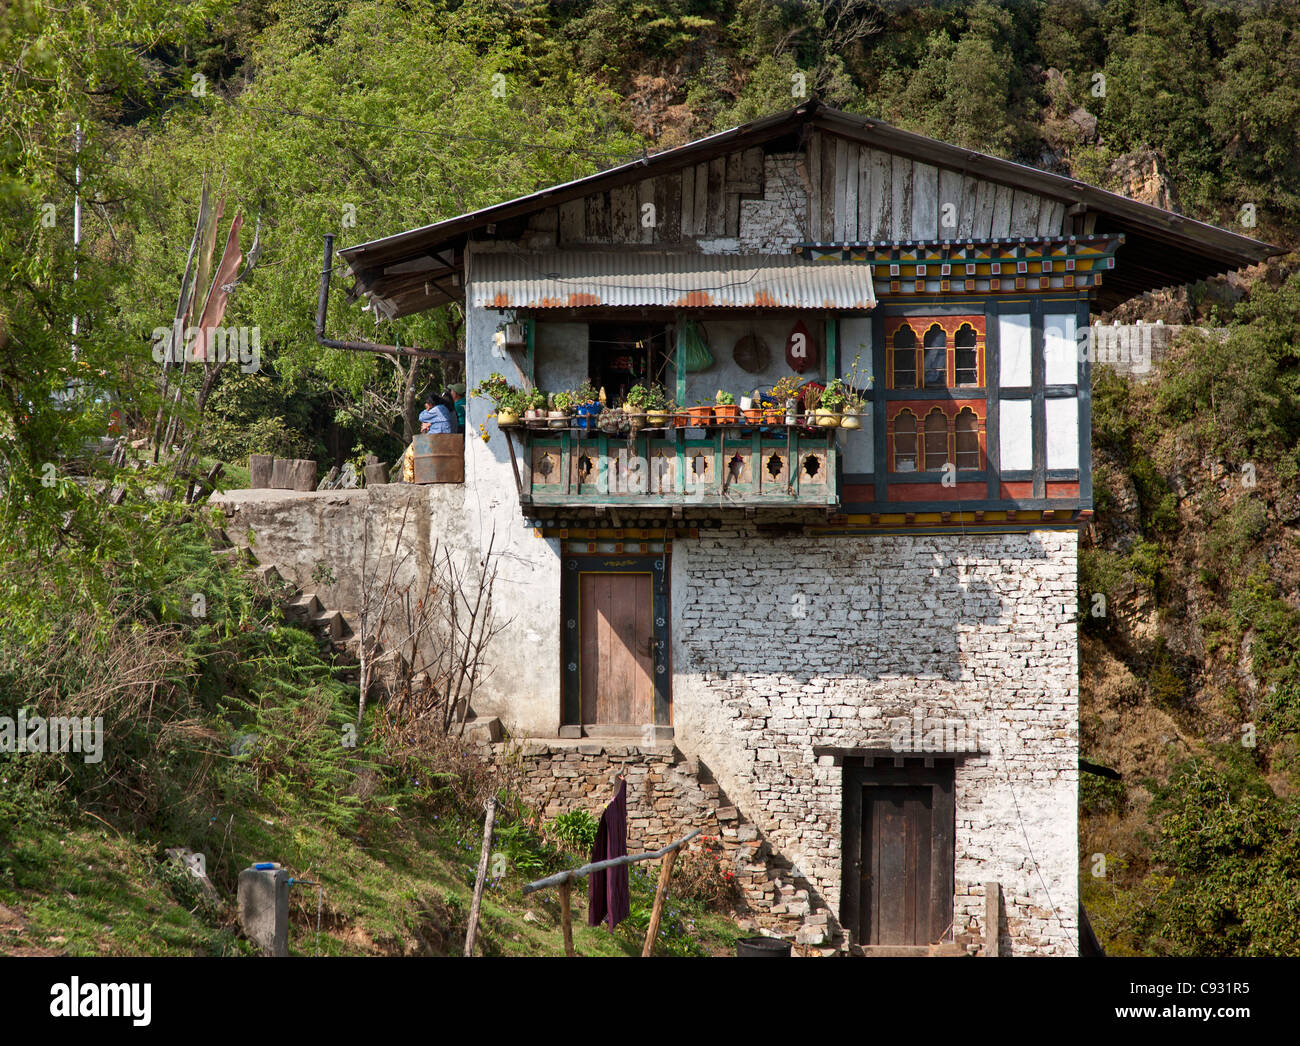 Images of bhutanese houses